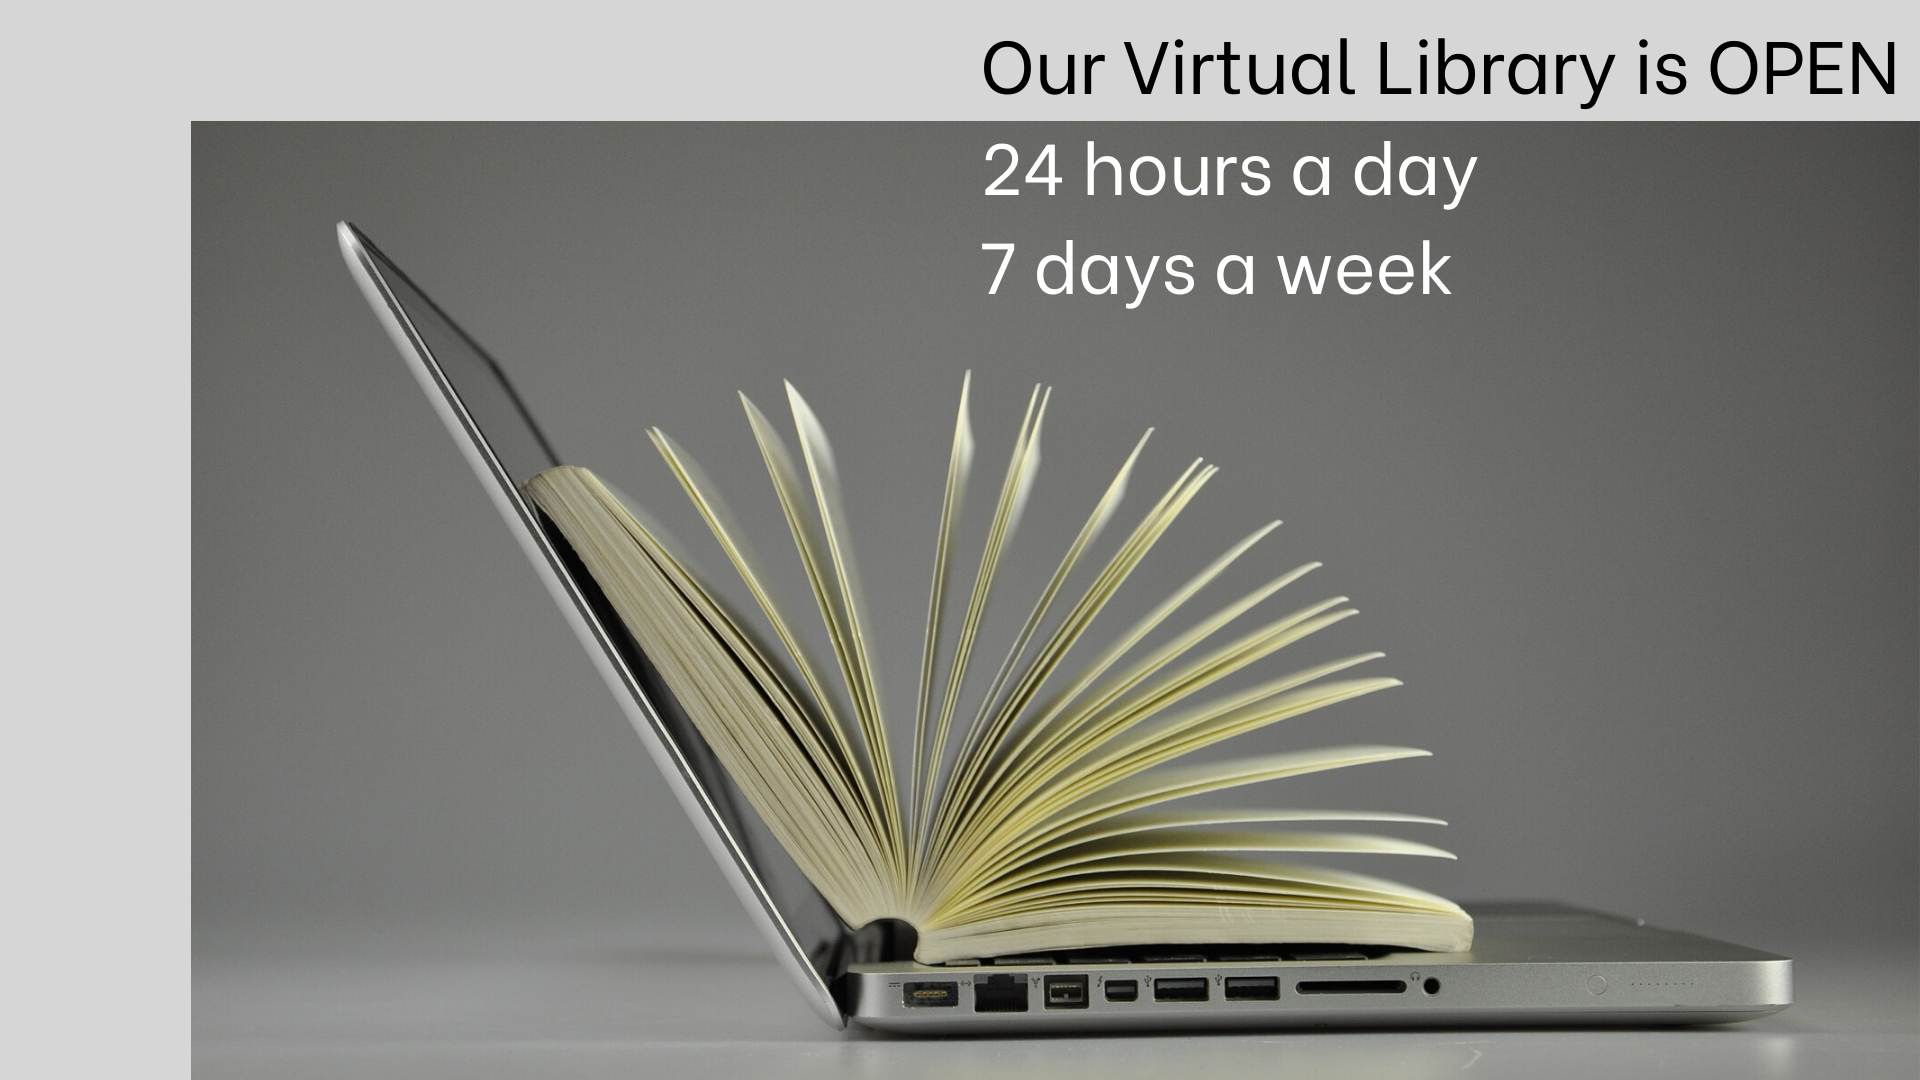 Click Here for Current Library Hours